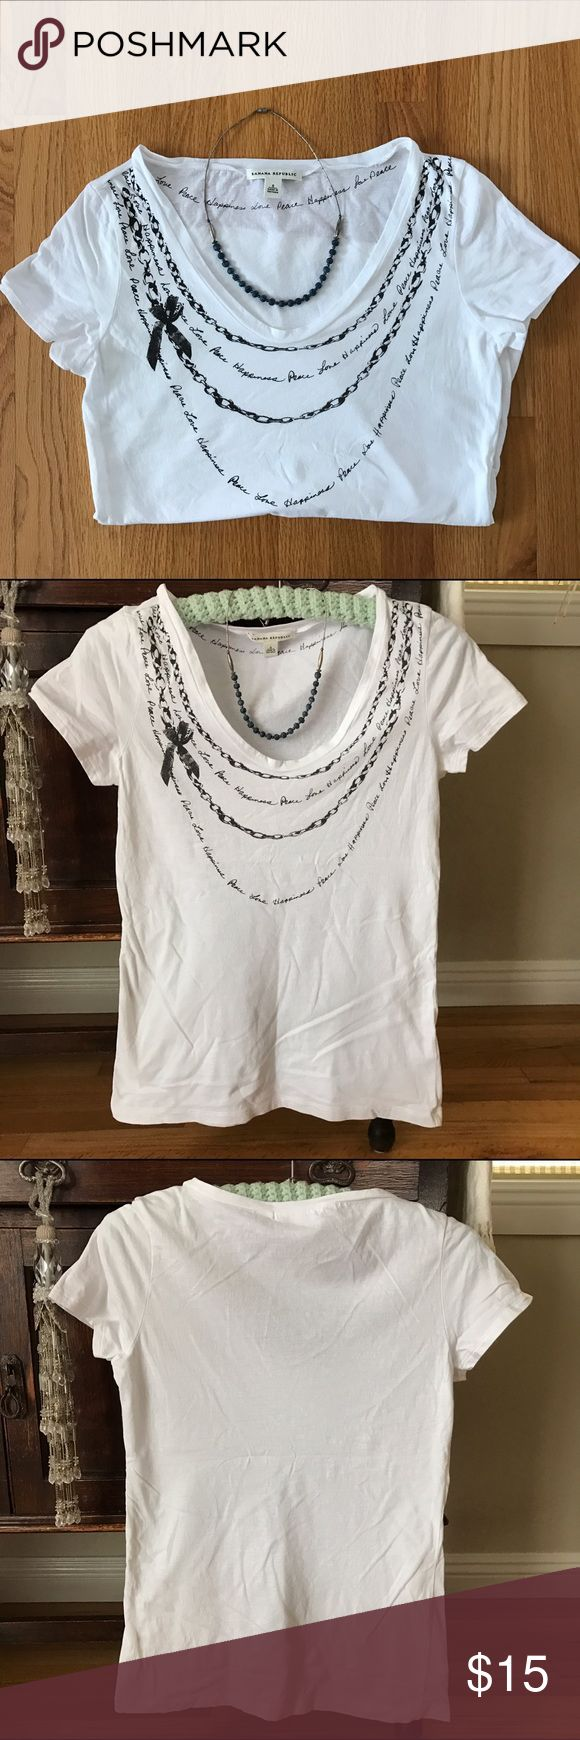 Banana Republic TShirt. Peace, Love , Happiness! Scooped neck Banana Republic TShirt. Size S. 100% cotton. Capped sleeves. Dress it up or layer with flannel. Super cute! Banana Republic Tops Tees - Short Sleeve